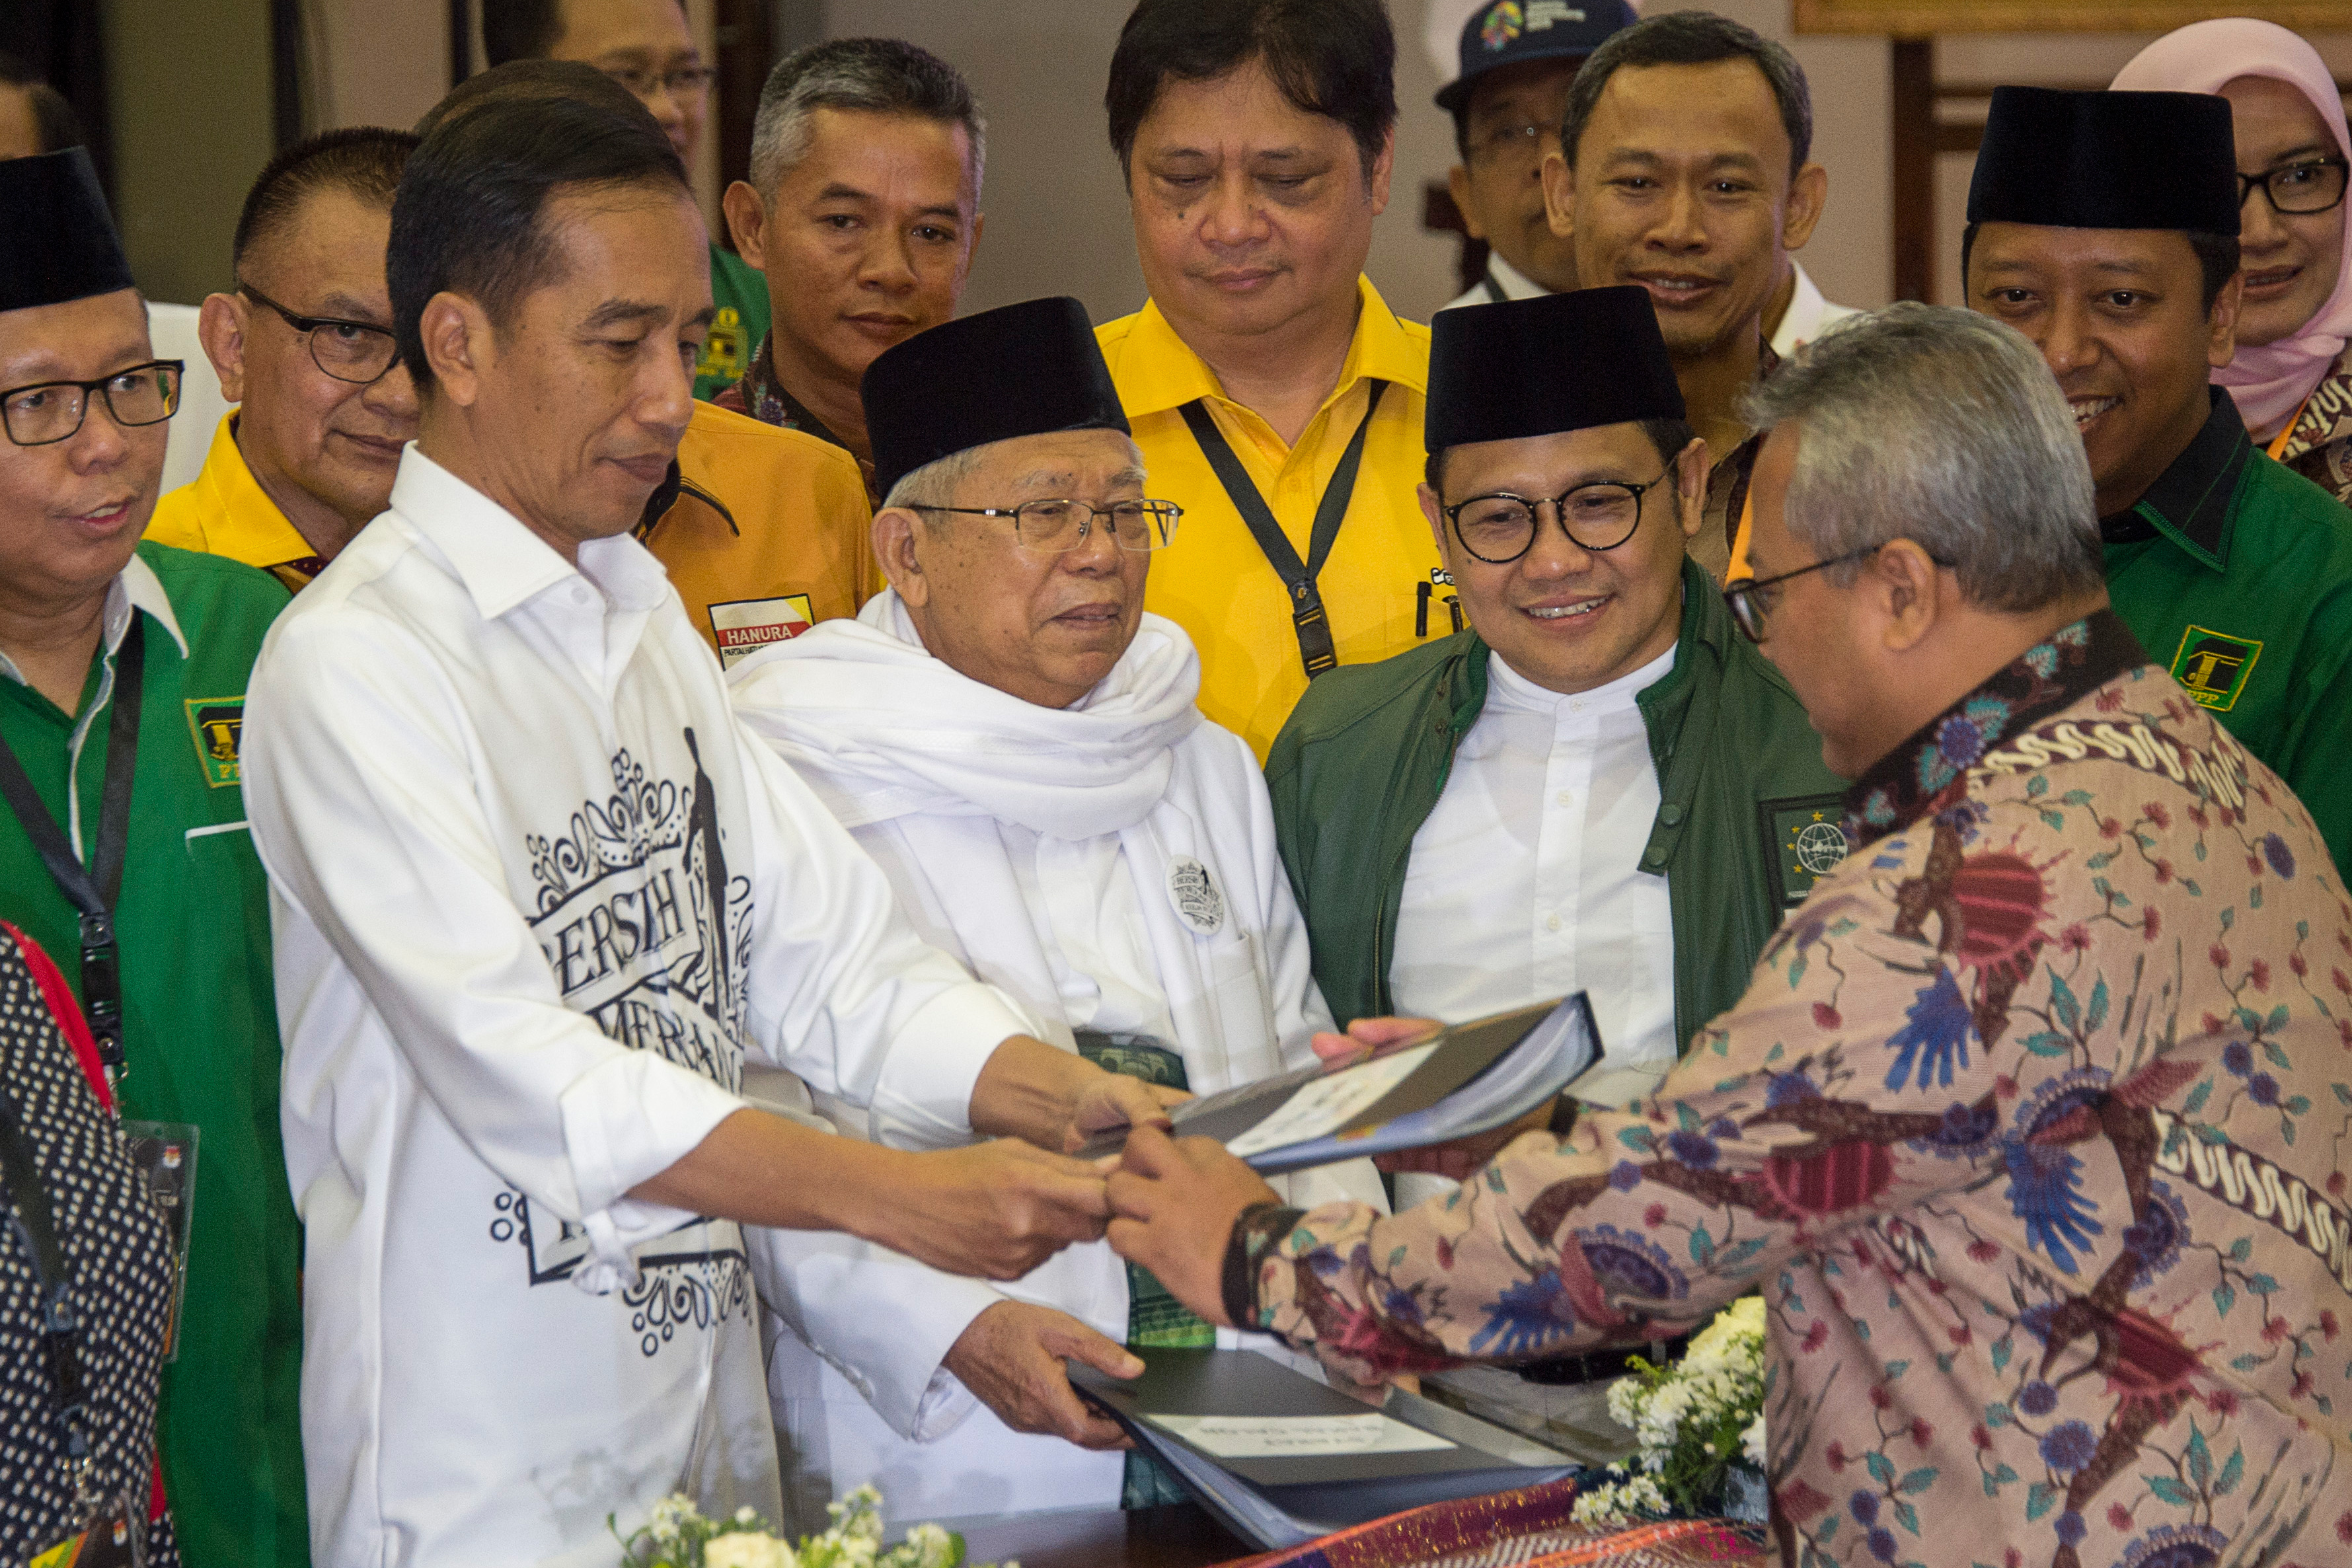 Indonesia's President Joko Widodo, front left, and the head of Indonesian Ulema Council Maruf Amin, center, submit their documents to election commission officials in Jakarta, Aug. 10, 2018, during their registration for the 2019 presidential electio...